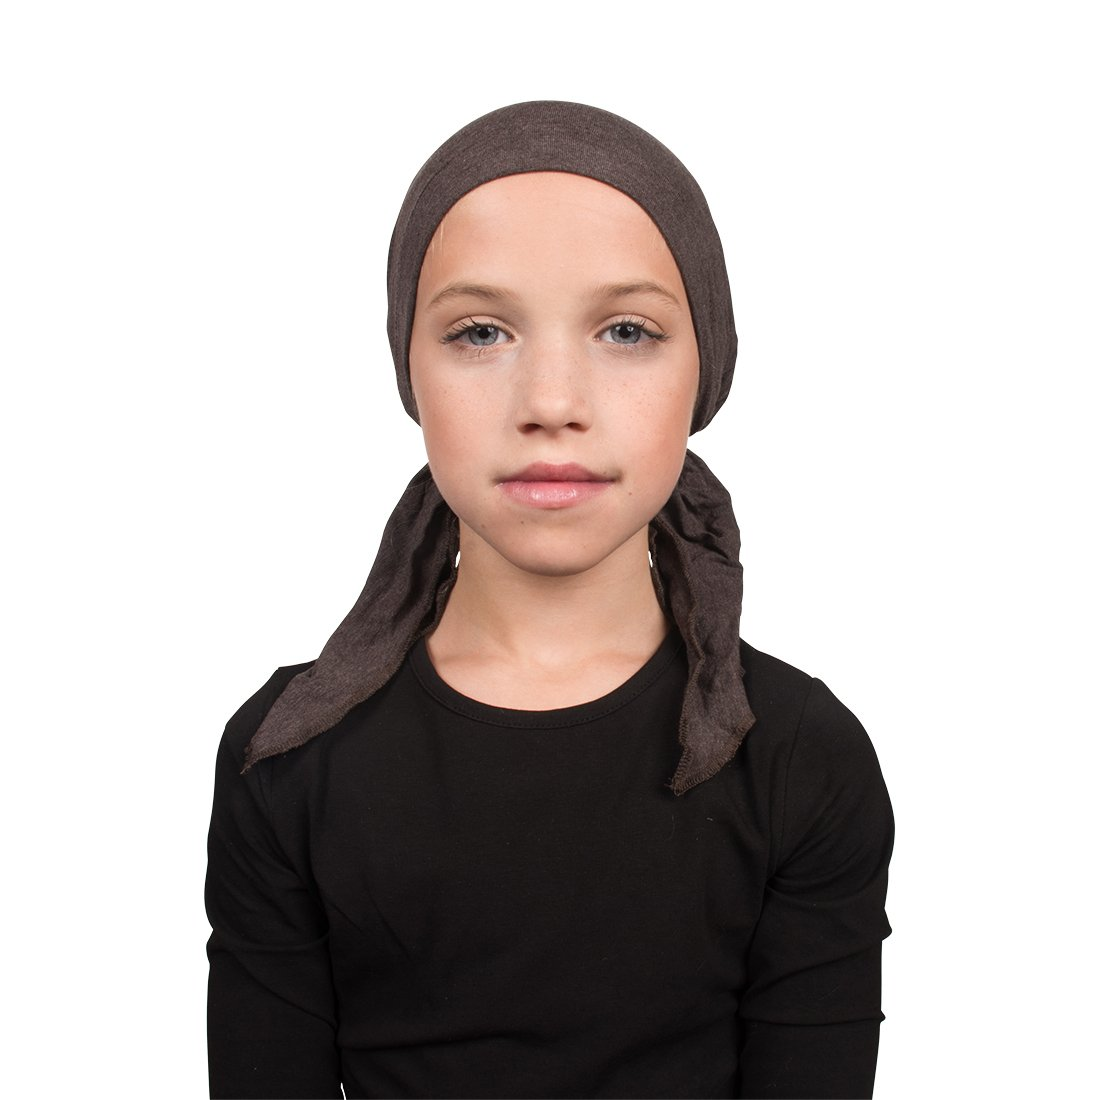 Kids Chemo Cap Pretied for Girls Soft Cancer Scarf - Brown Landana Headscarves ldptk-brown-SF